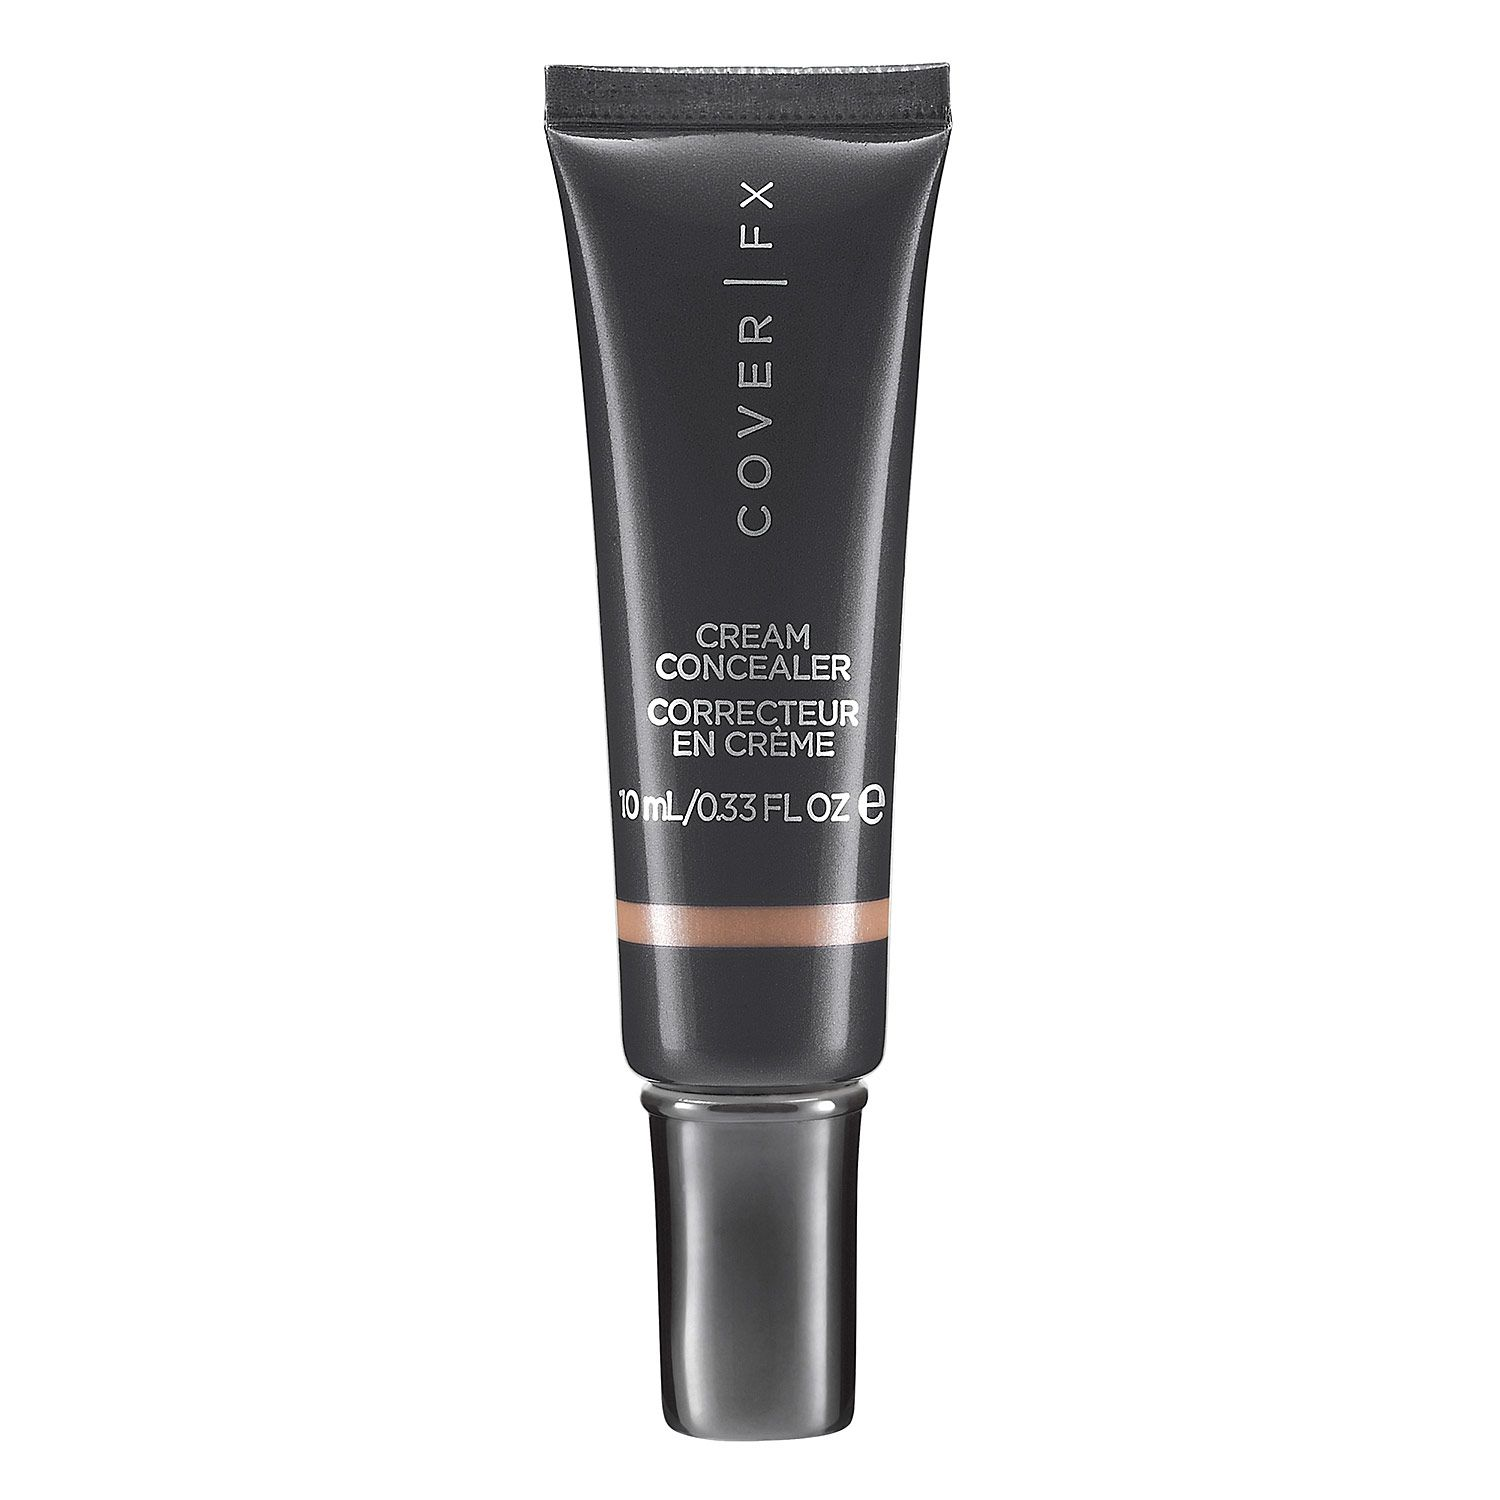 What it is: A water-based liquid cream concealer offering medium to full coverage. What it does: This concealer is designed to provide buildable coverage for both the undereye area and face to conceal imperfections, darkness, and discolorations. Wha